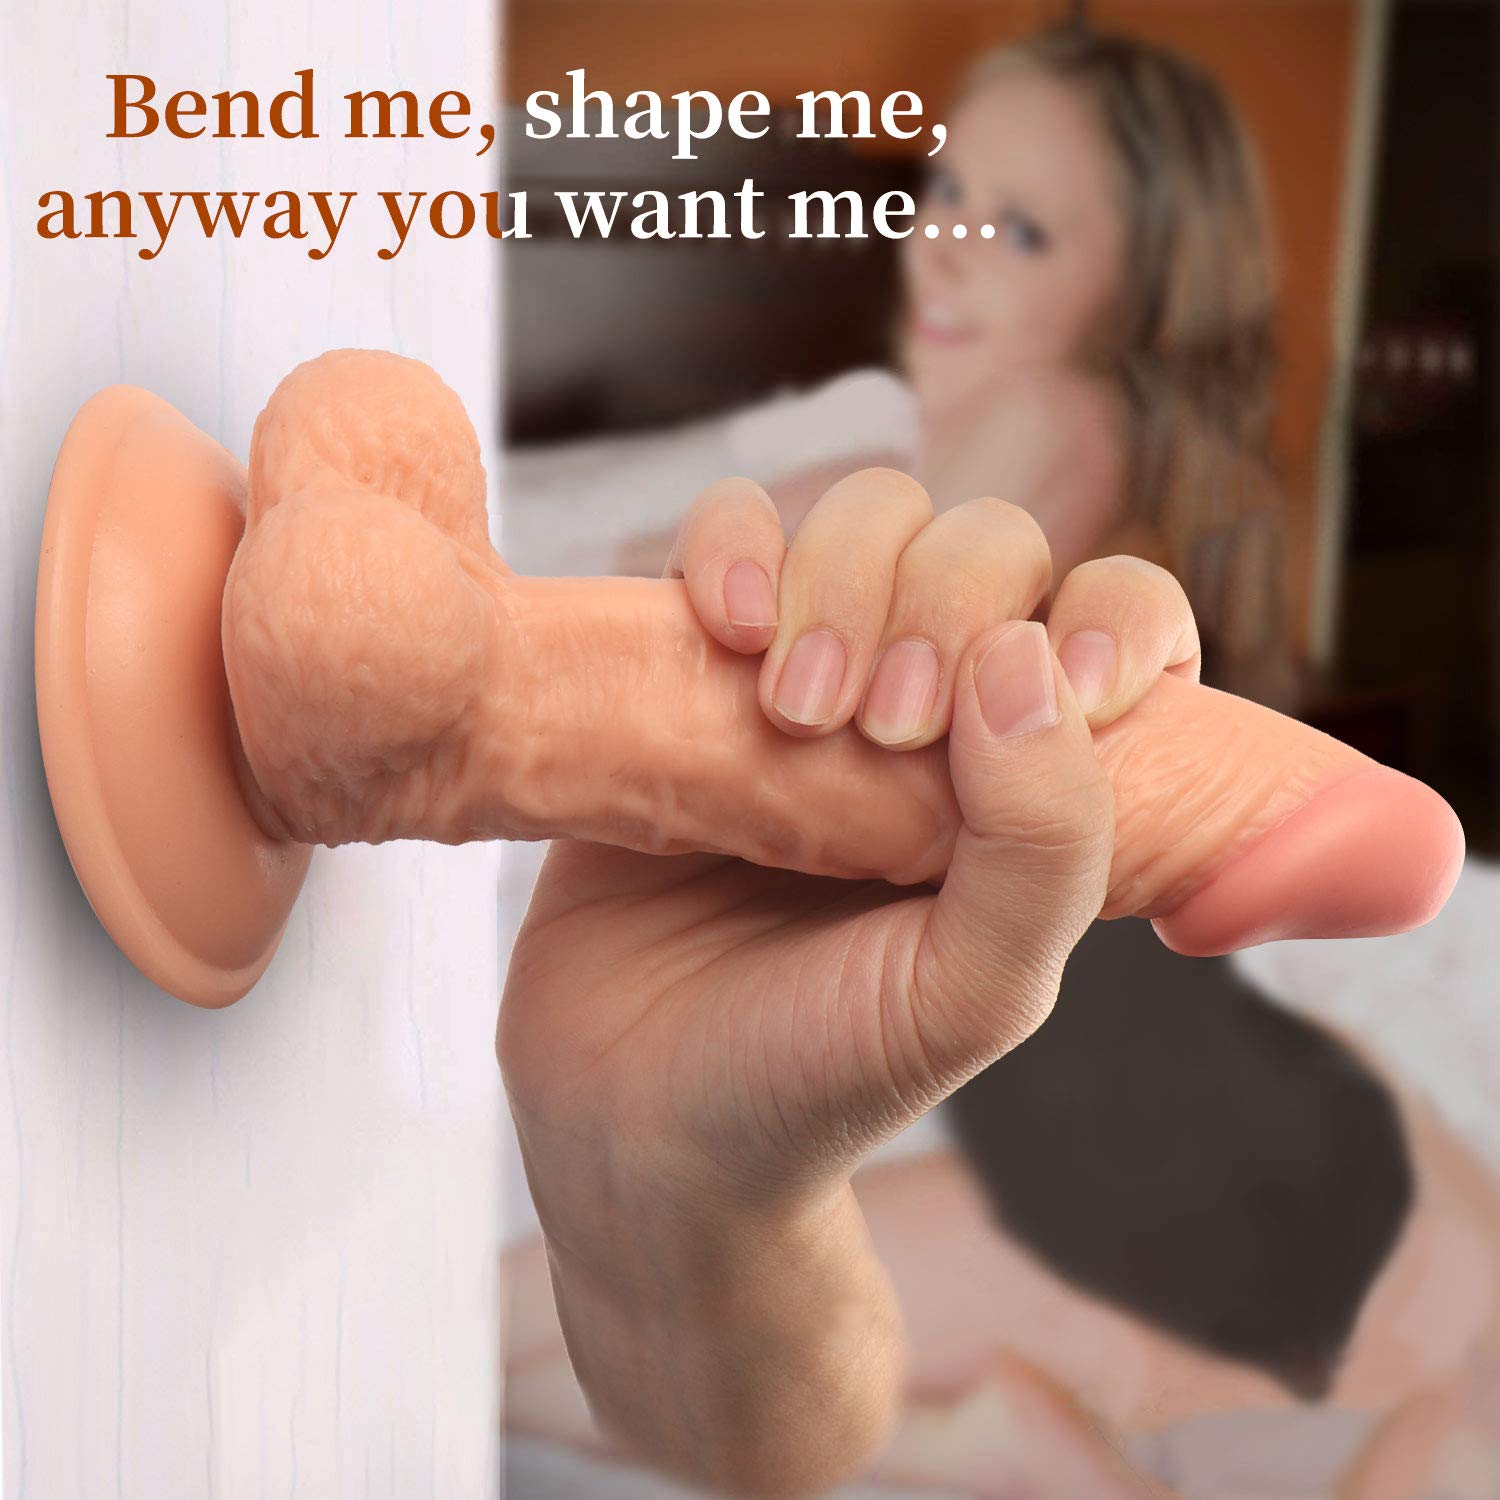 7.8 Inches Sili-cone Material Female lifelike Toy Used in Everywhere You Wanted